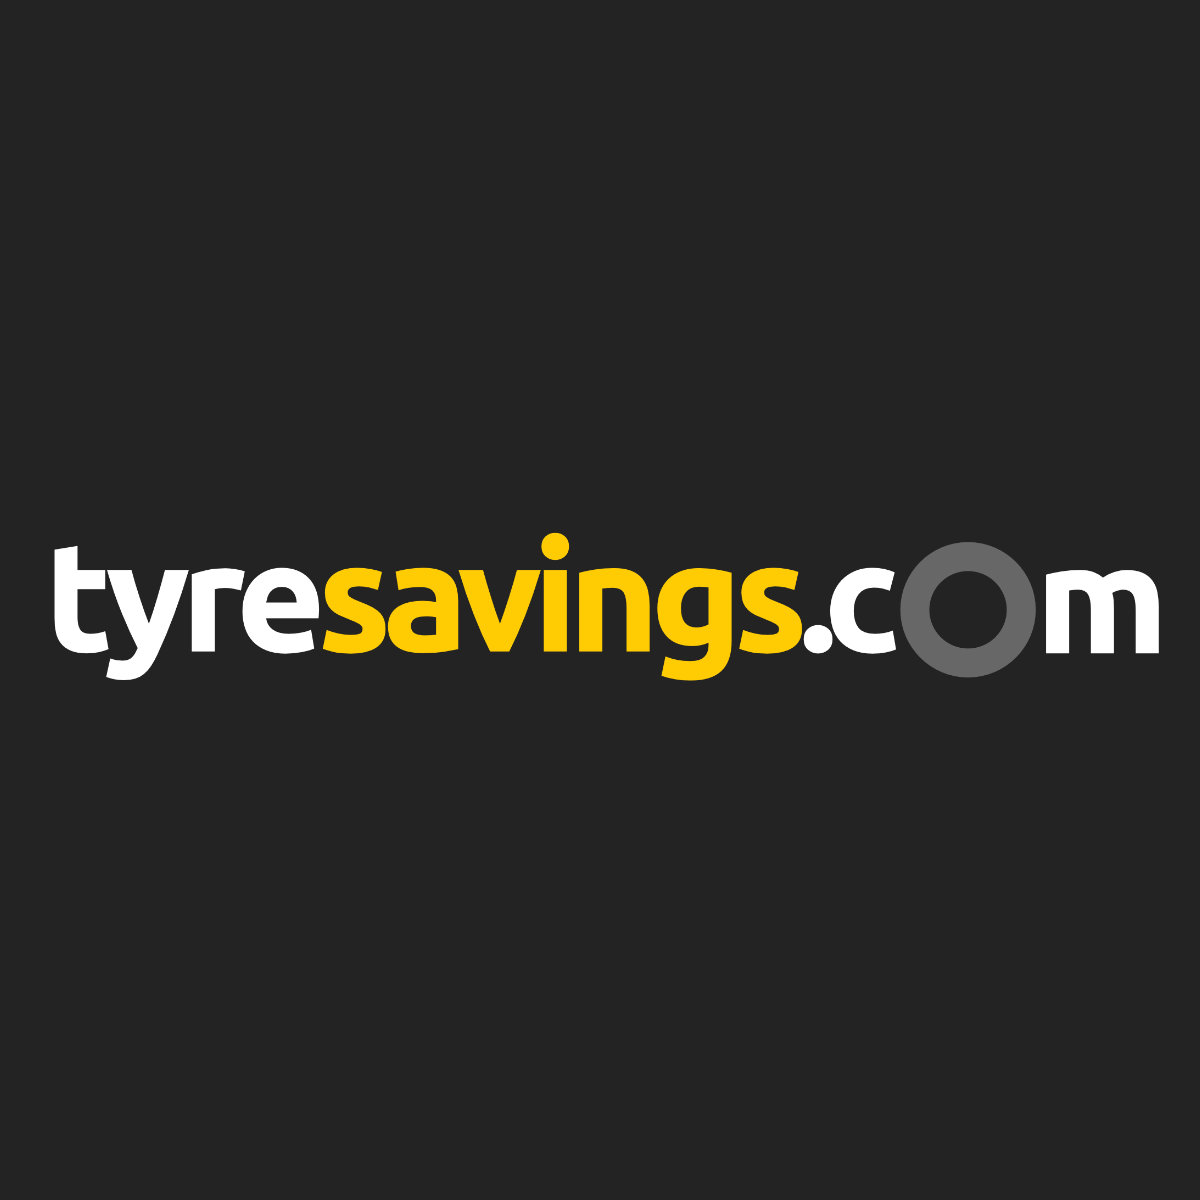 Cheap Tyres - Tyresavings provides wide range of car tyres online at low prices. You can b...